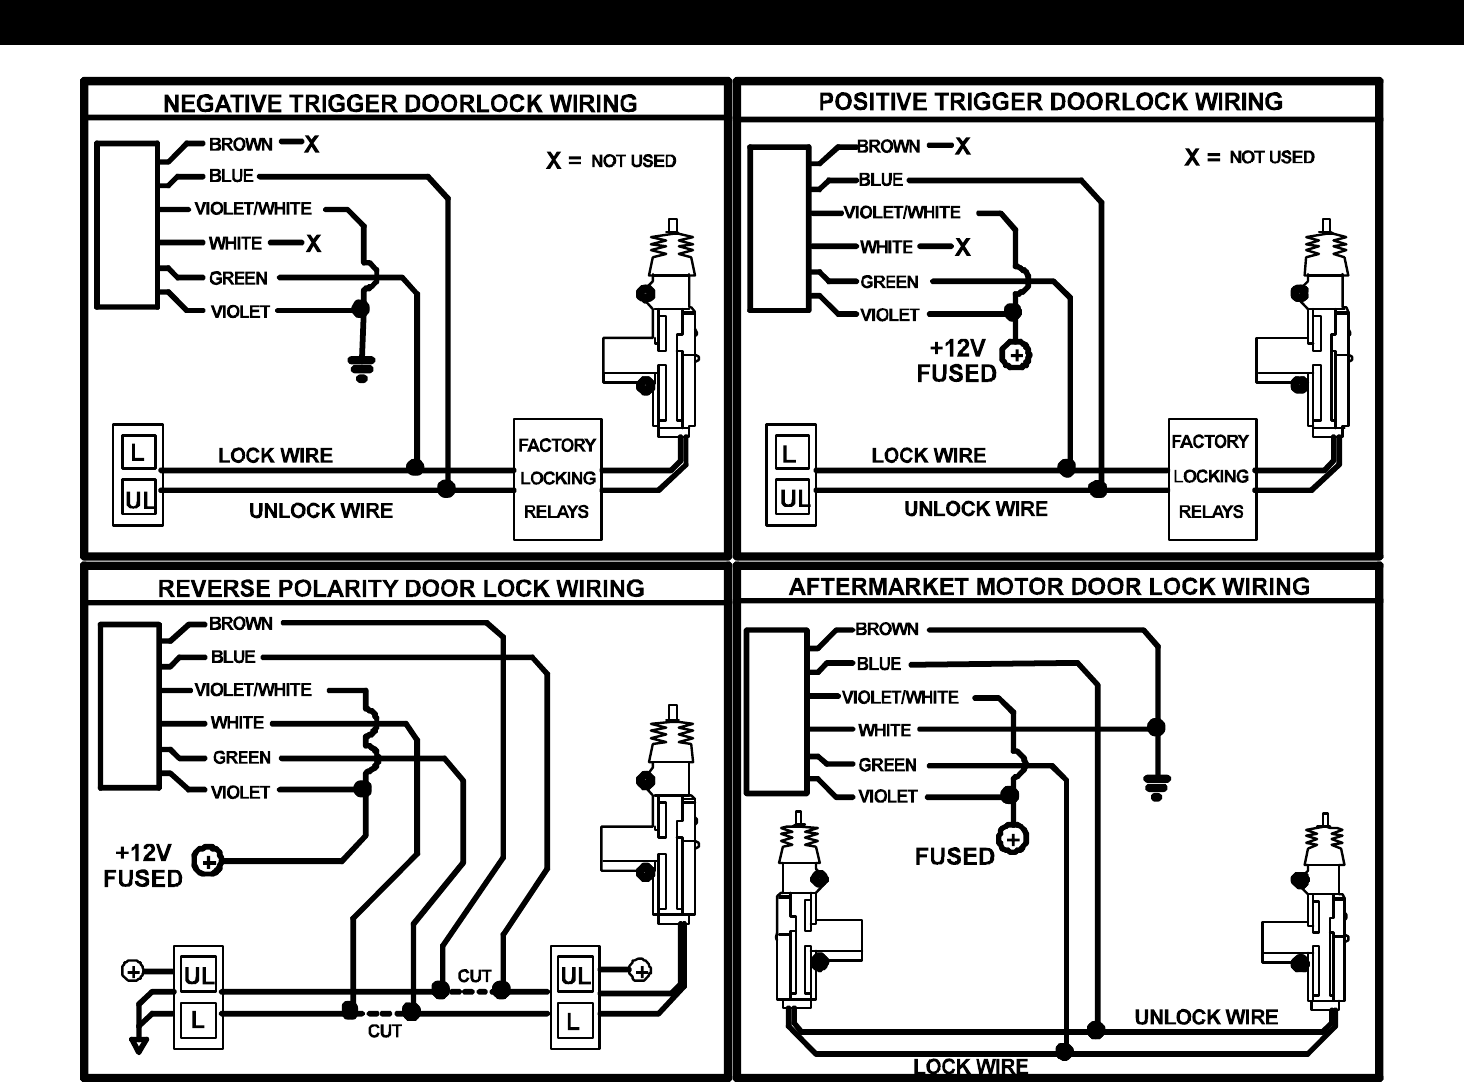 a8413788 0d4b 4ba0 848e 782364050129 bg6 crimestopper wiring diagram 4 way wiring diagram \u2022 wiring diagrams  at bayanpartner.co